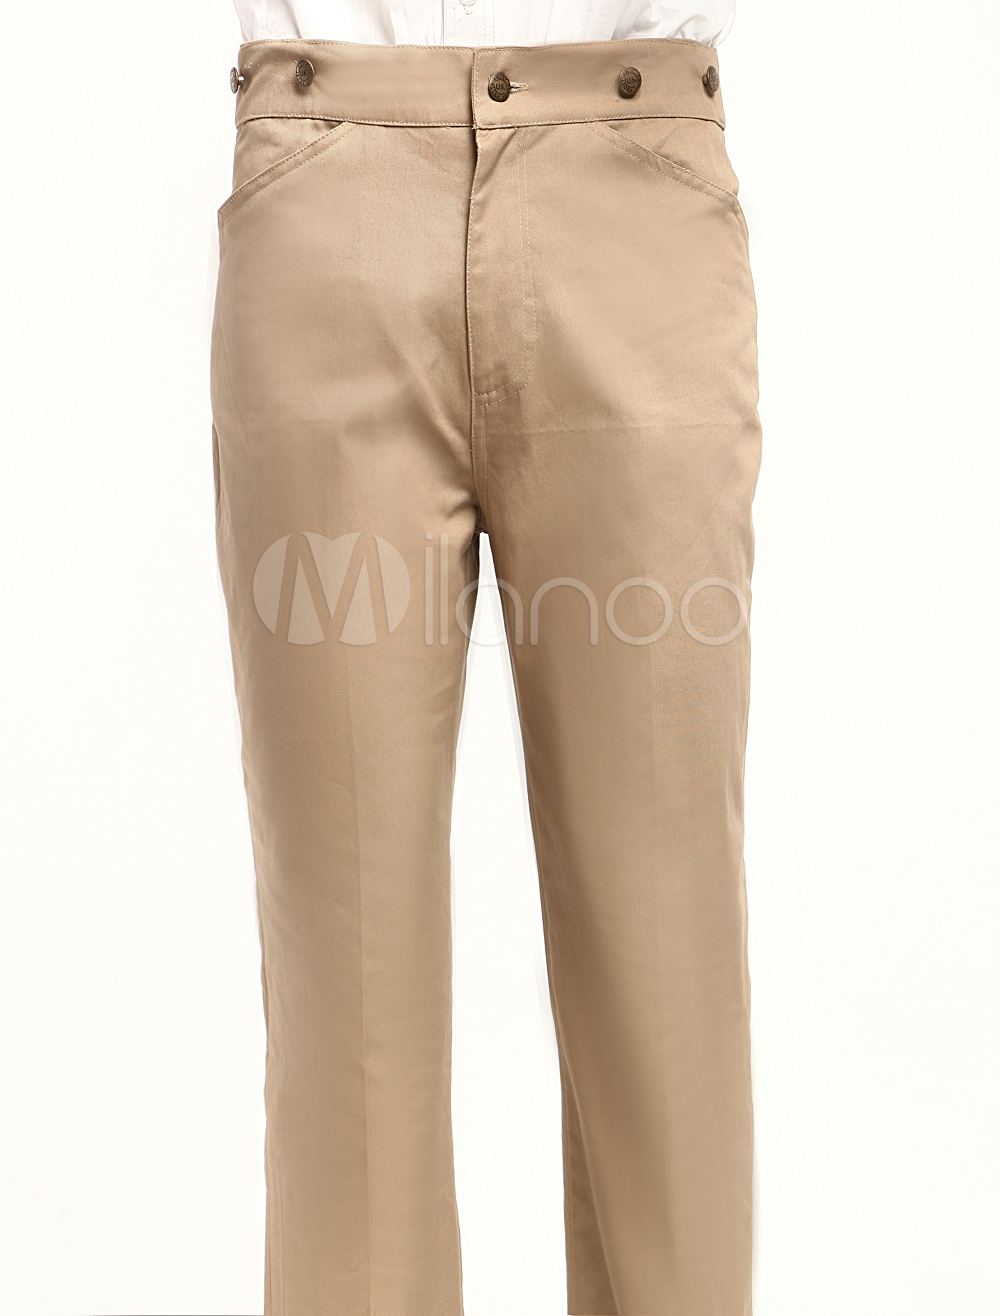 Popular Khaki Cotton Fabrics Mens Steampunk Trouser $49.99 AT vintagedancer.com